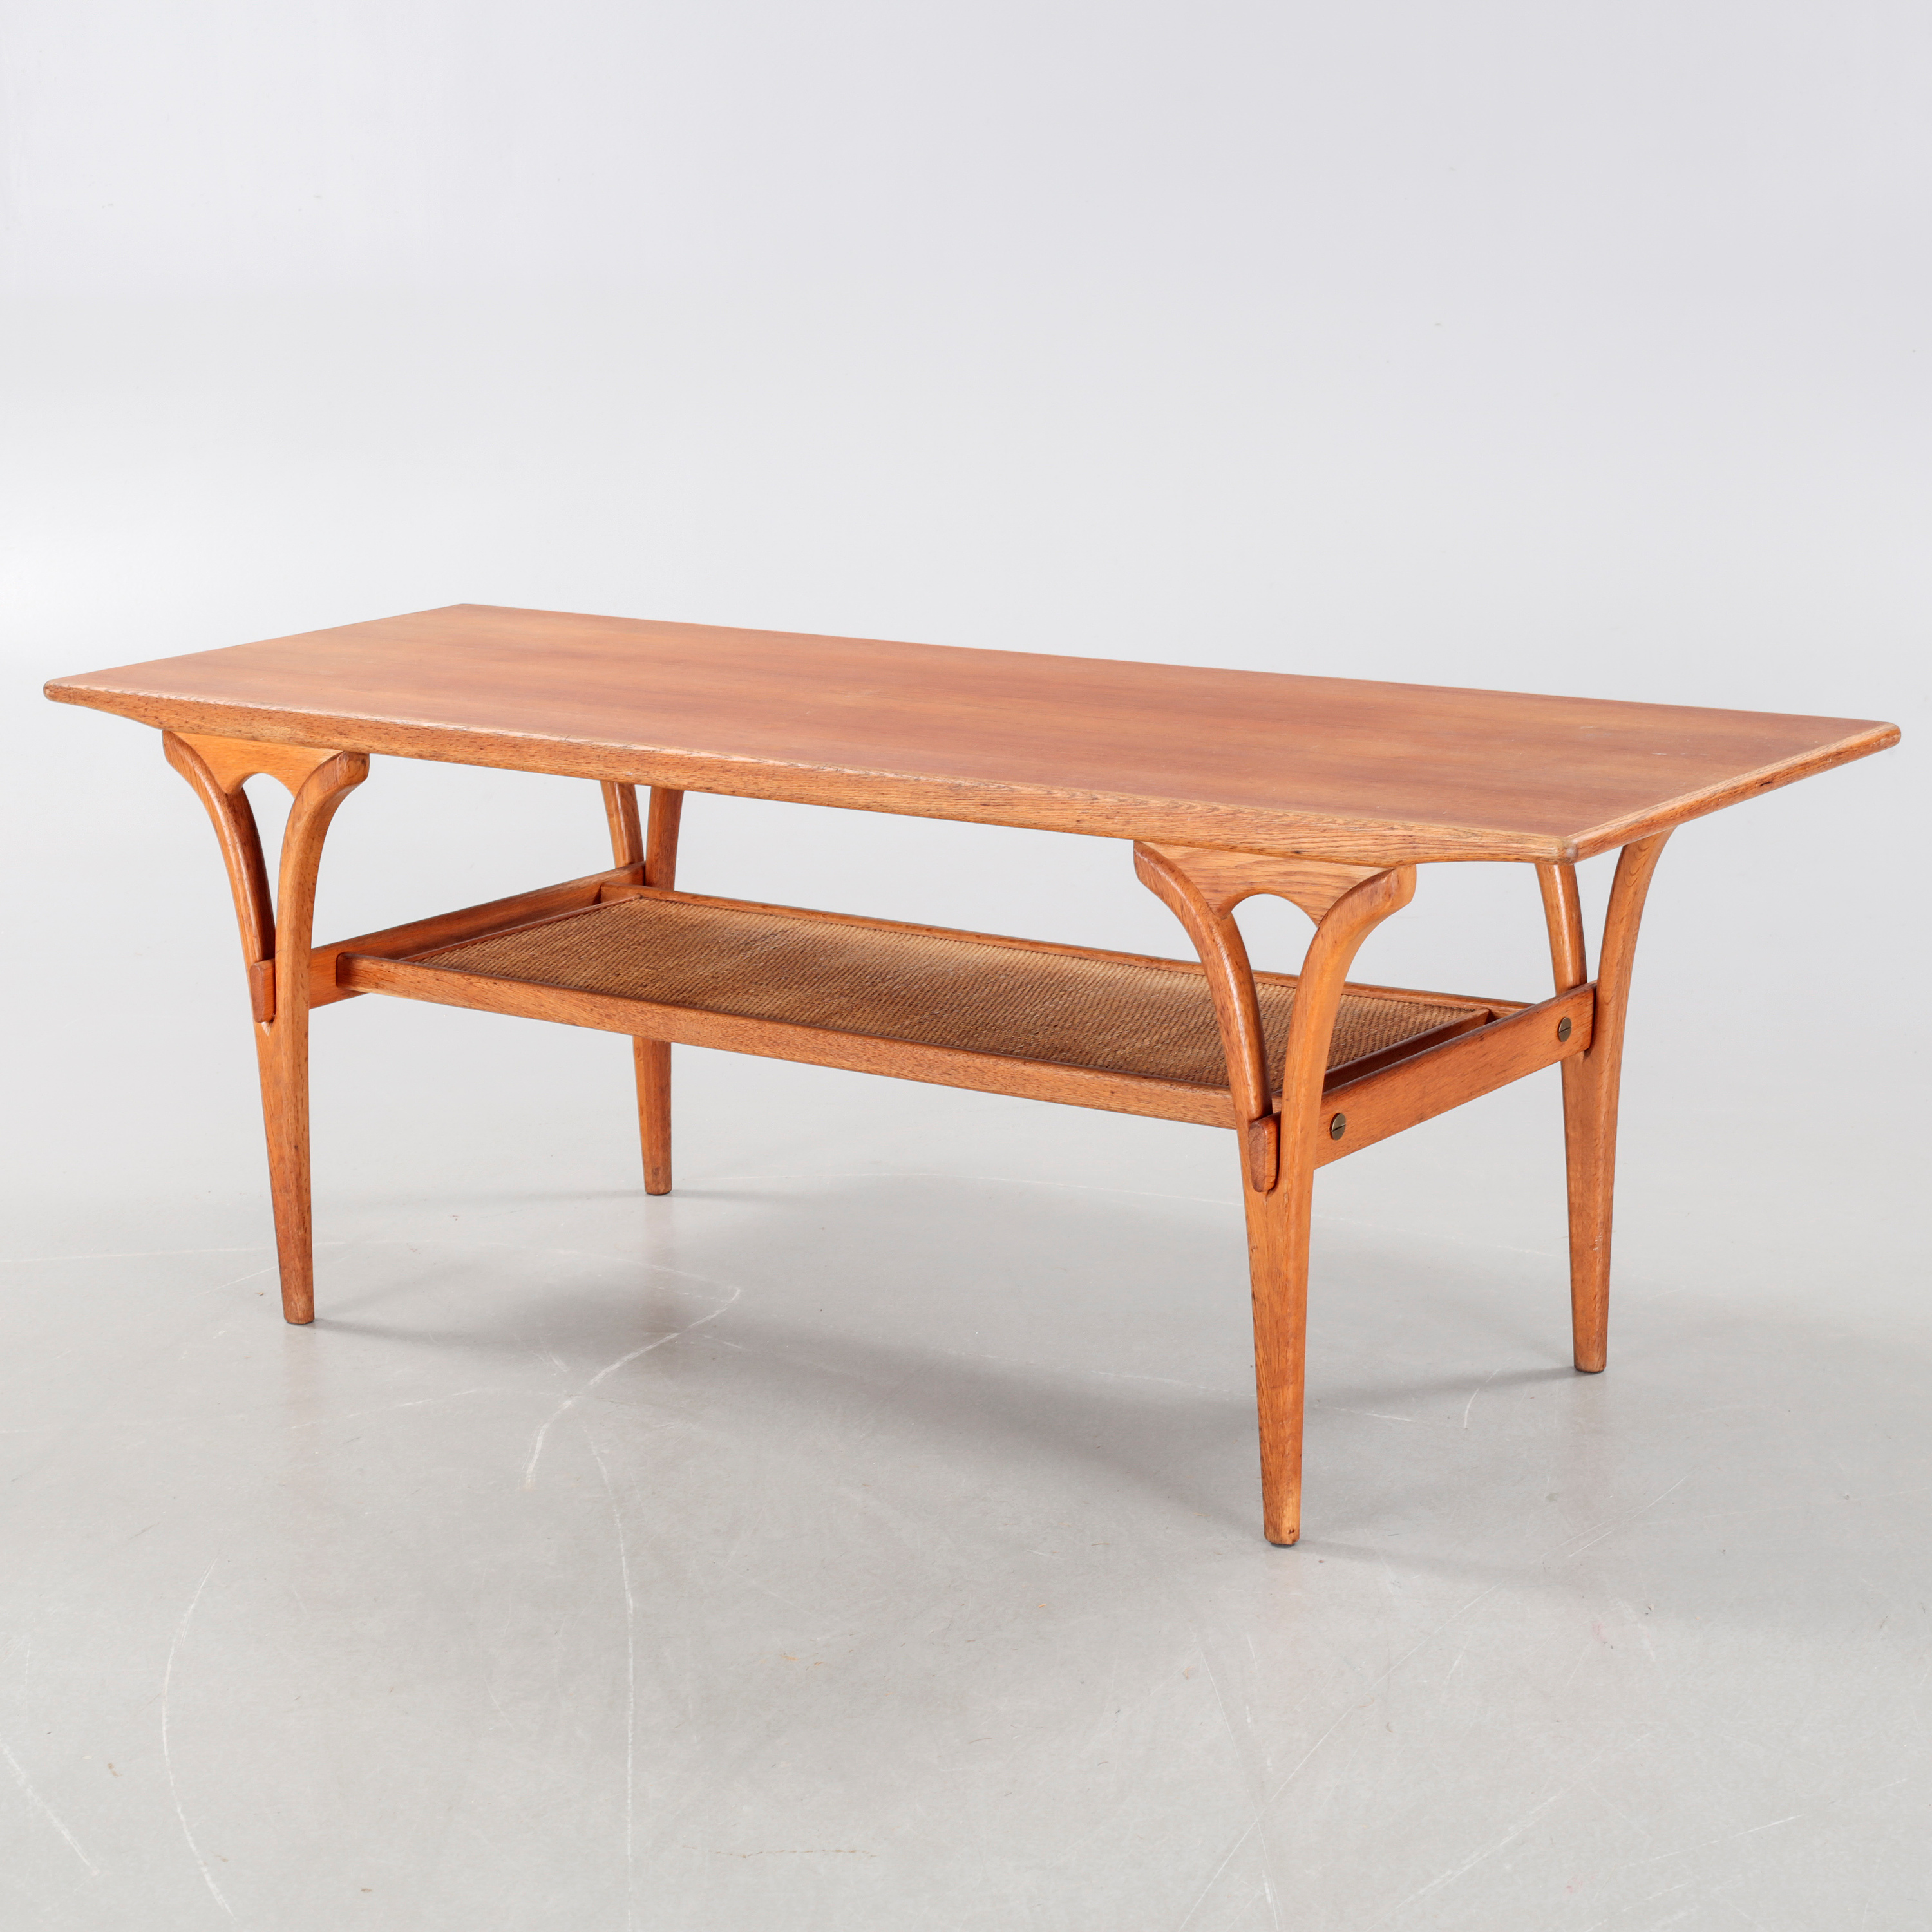 A 1950 60s Coffee Table By Birger Larsson For Bodafors